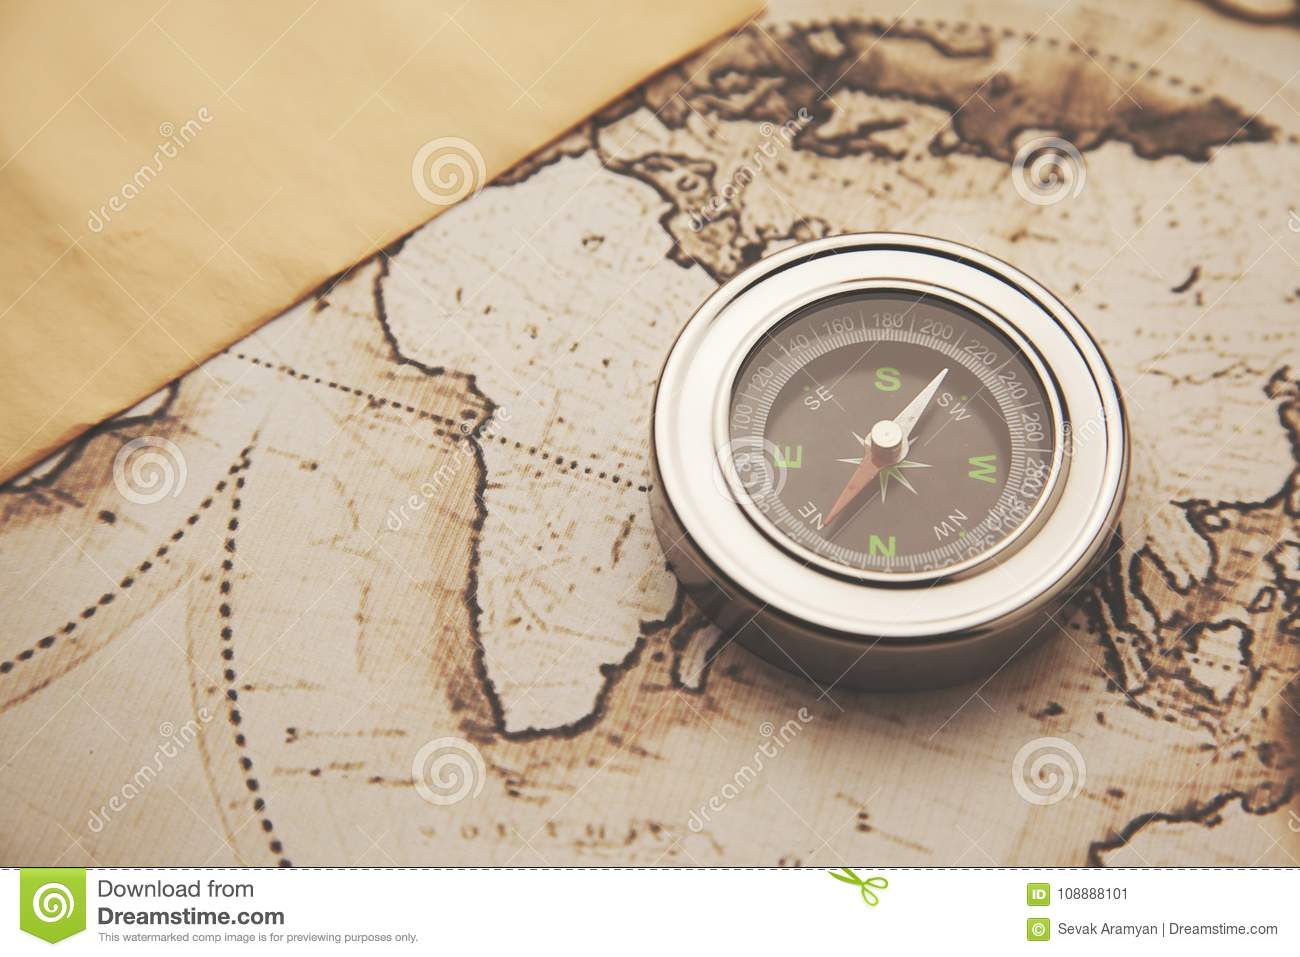 Compass and map stock image  Image of history, navigate